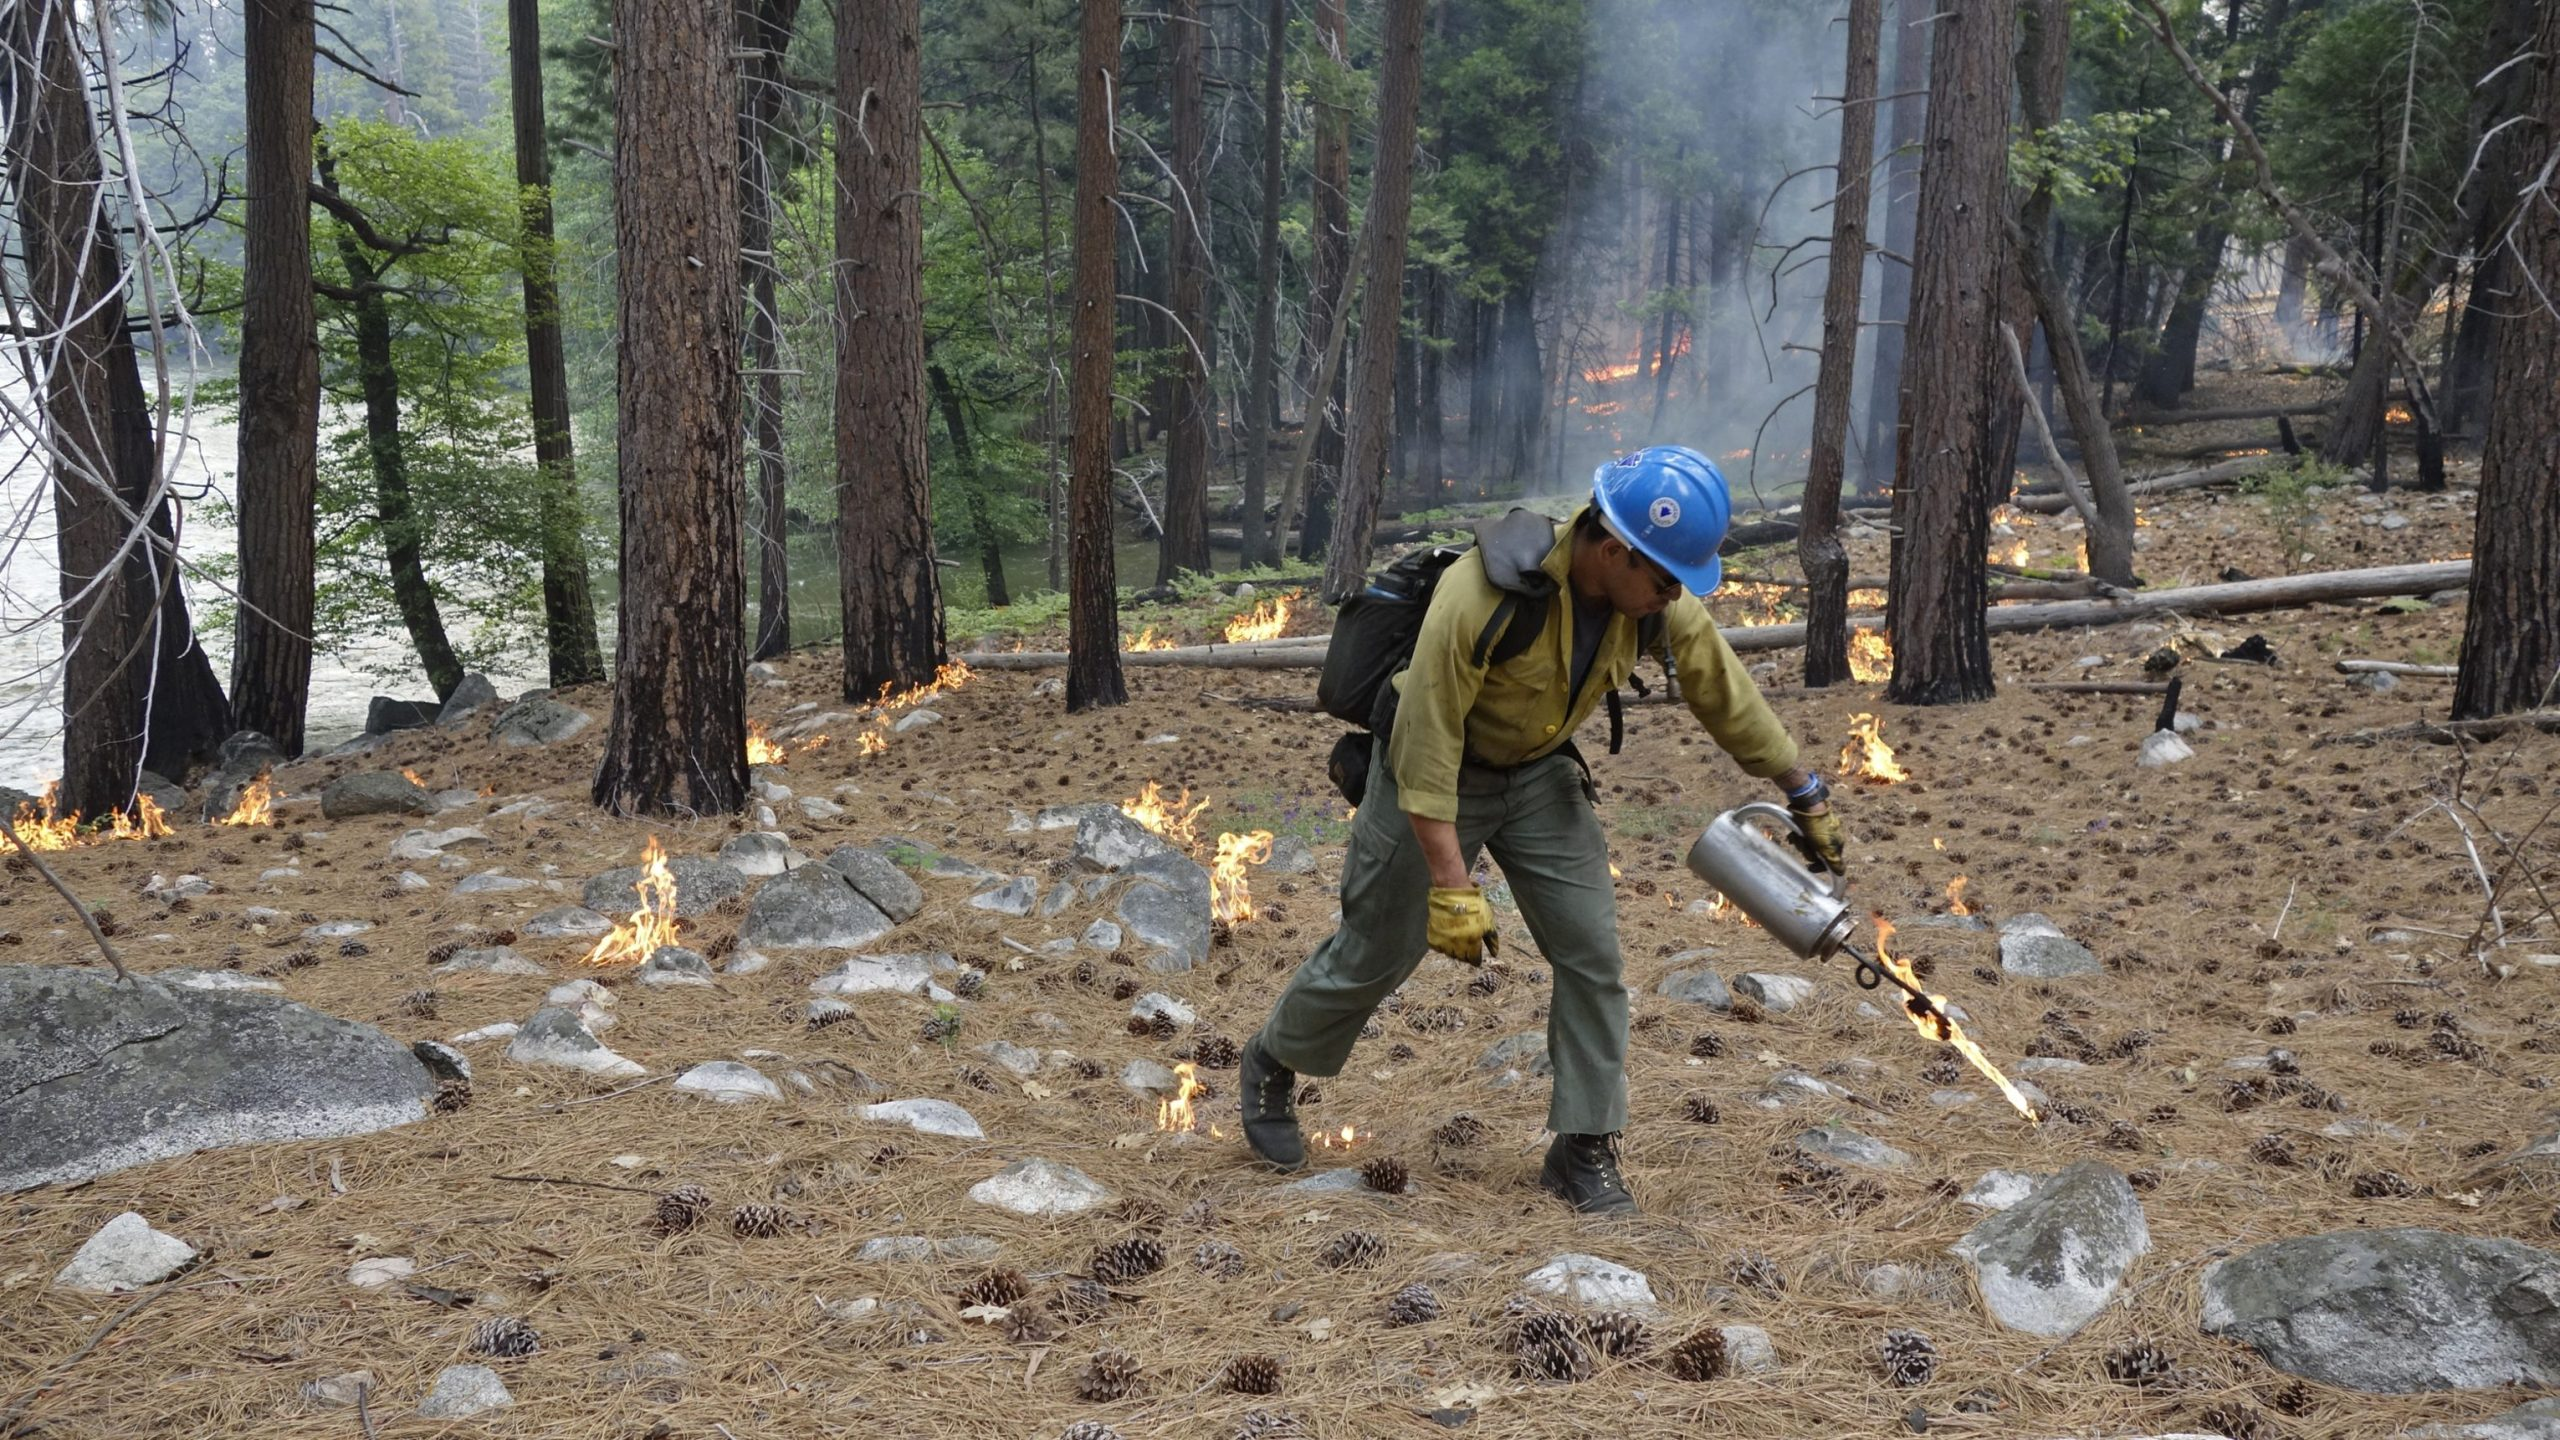 Firefighter Charles VeaVea pours flames from a drip torch near the Kings River during a prescribed fire in Kings Canyon National Park on June 11, 2019. (Brian Melley / Associated Press)